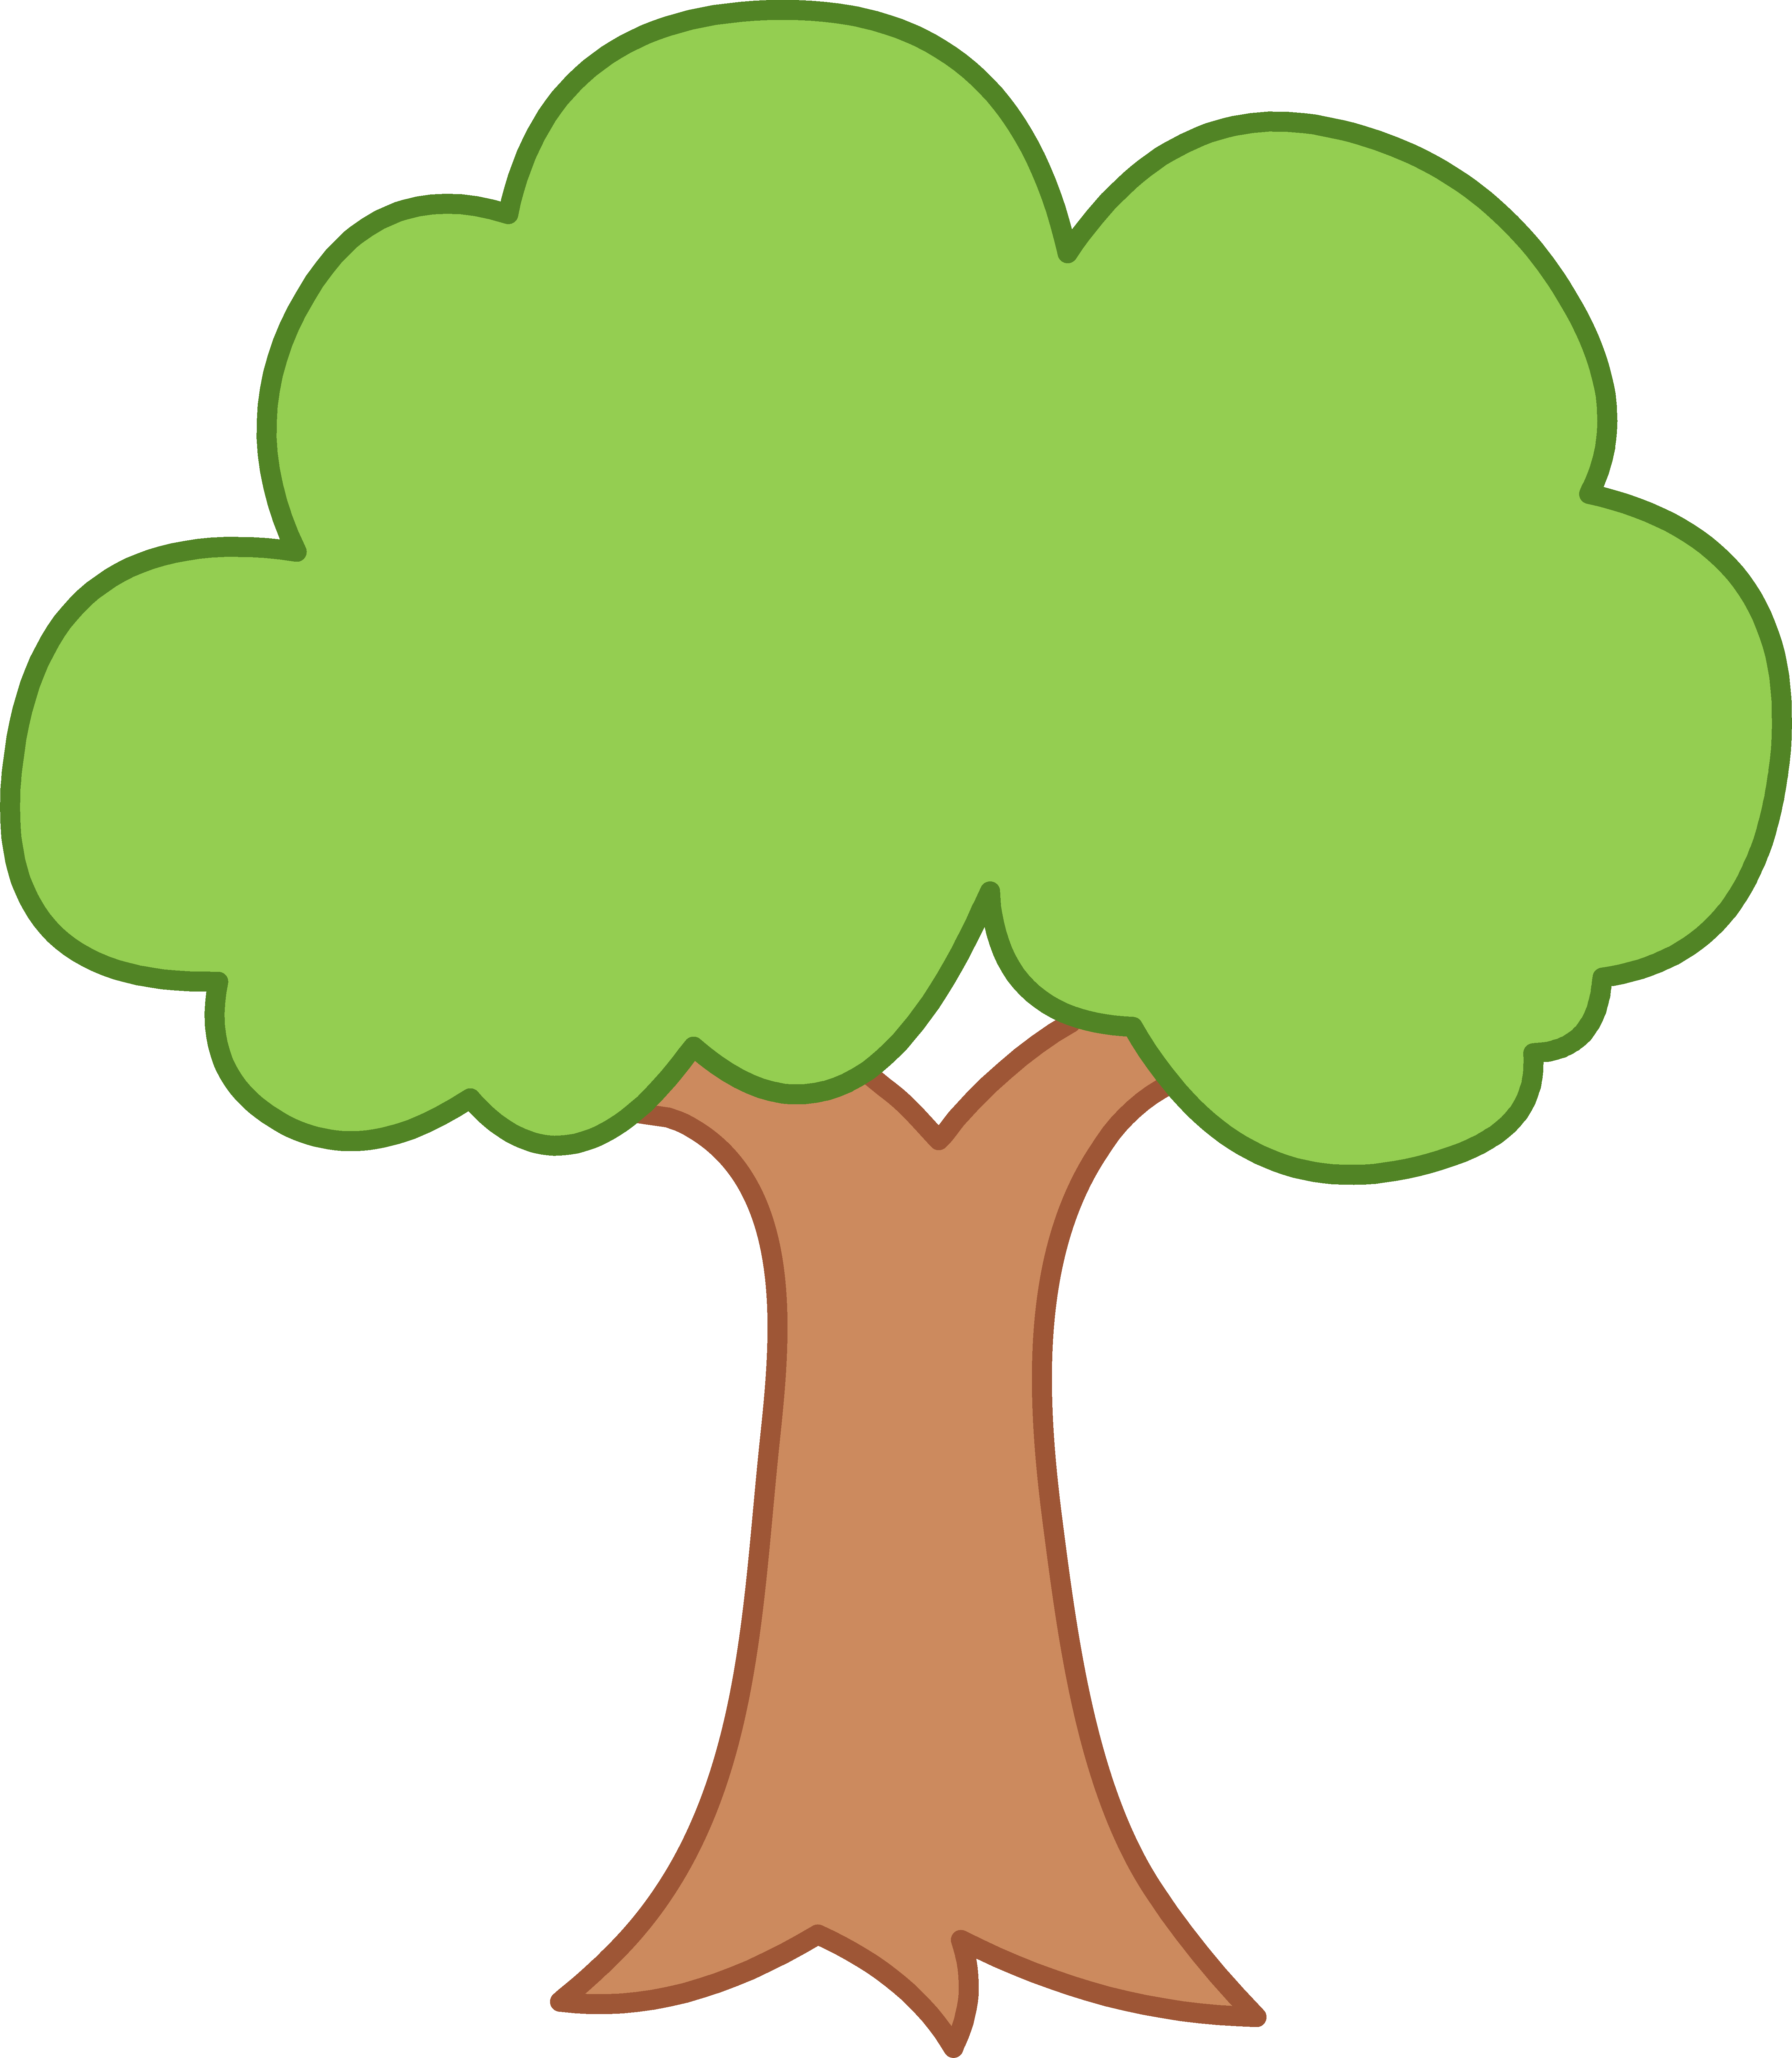 Panda free images tree. Kind clipart nature